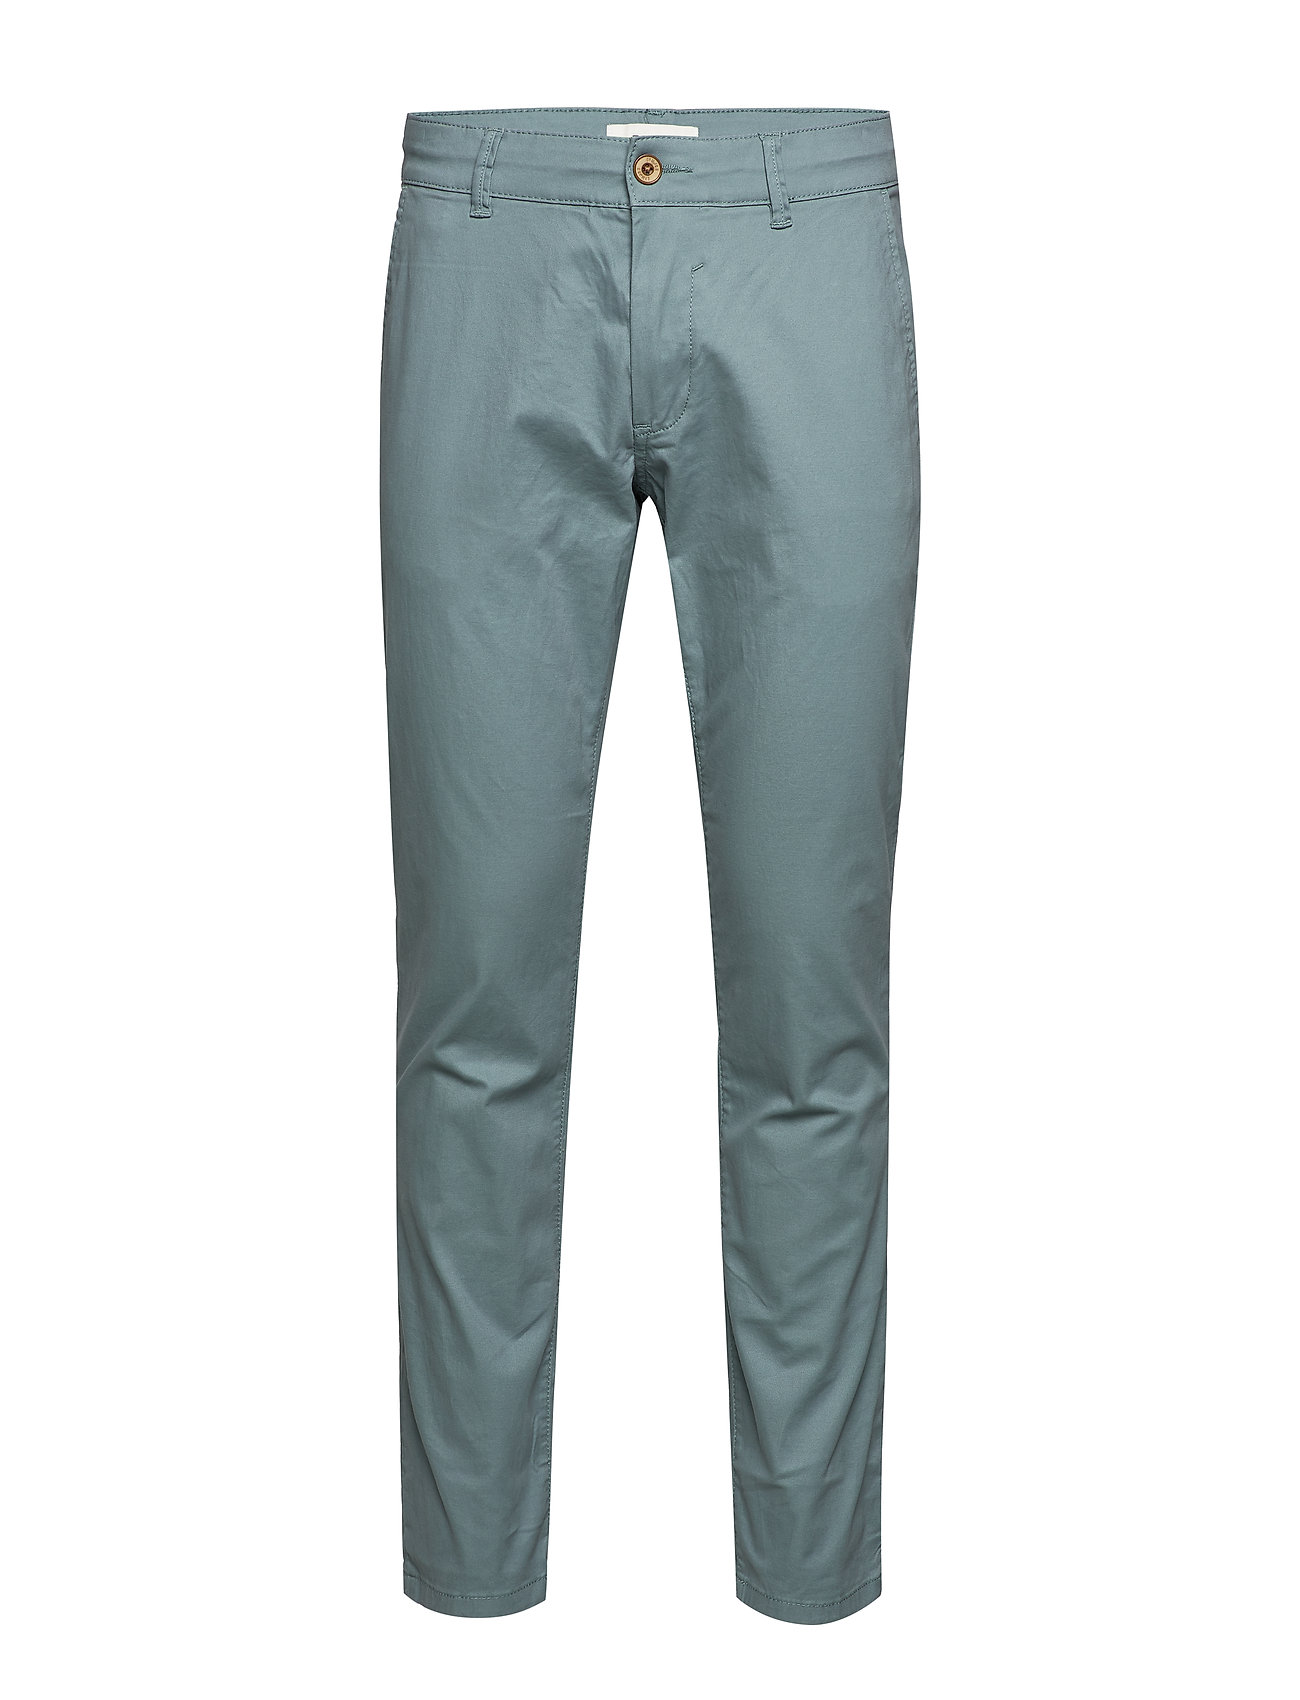 Esprit Casual Pants woven - TEAL GREEN